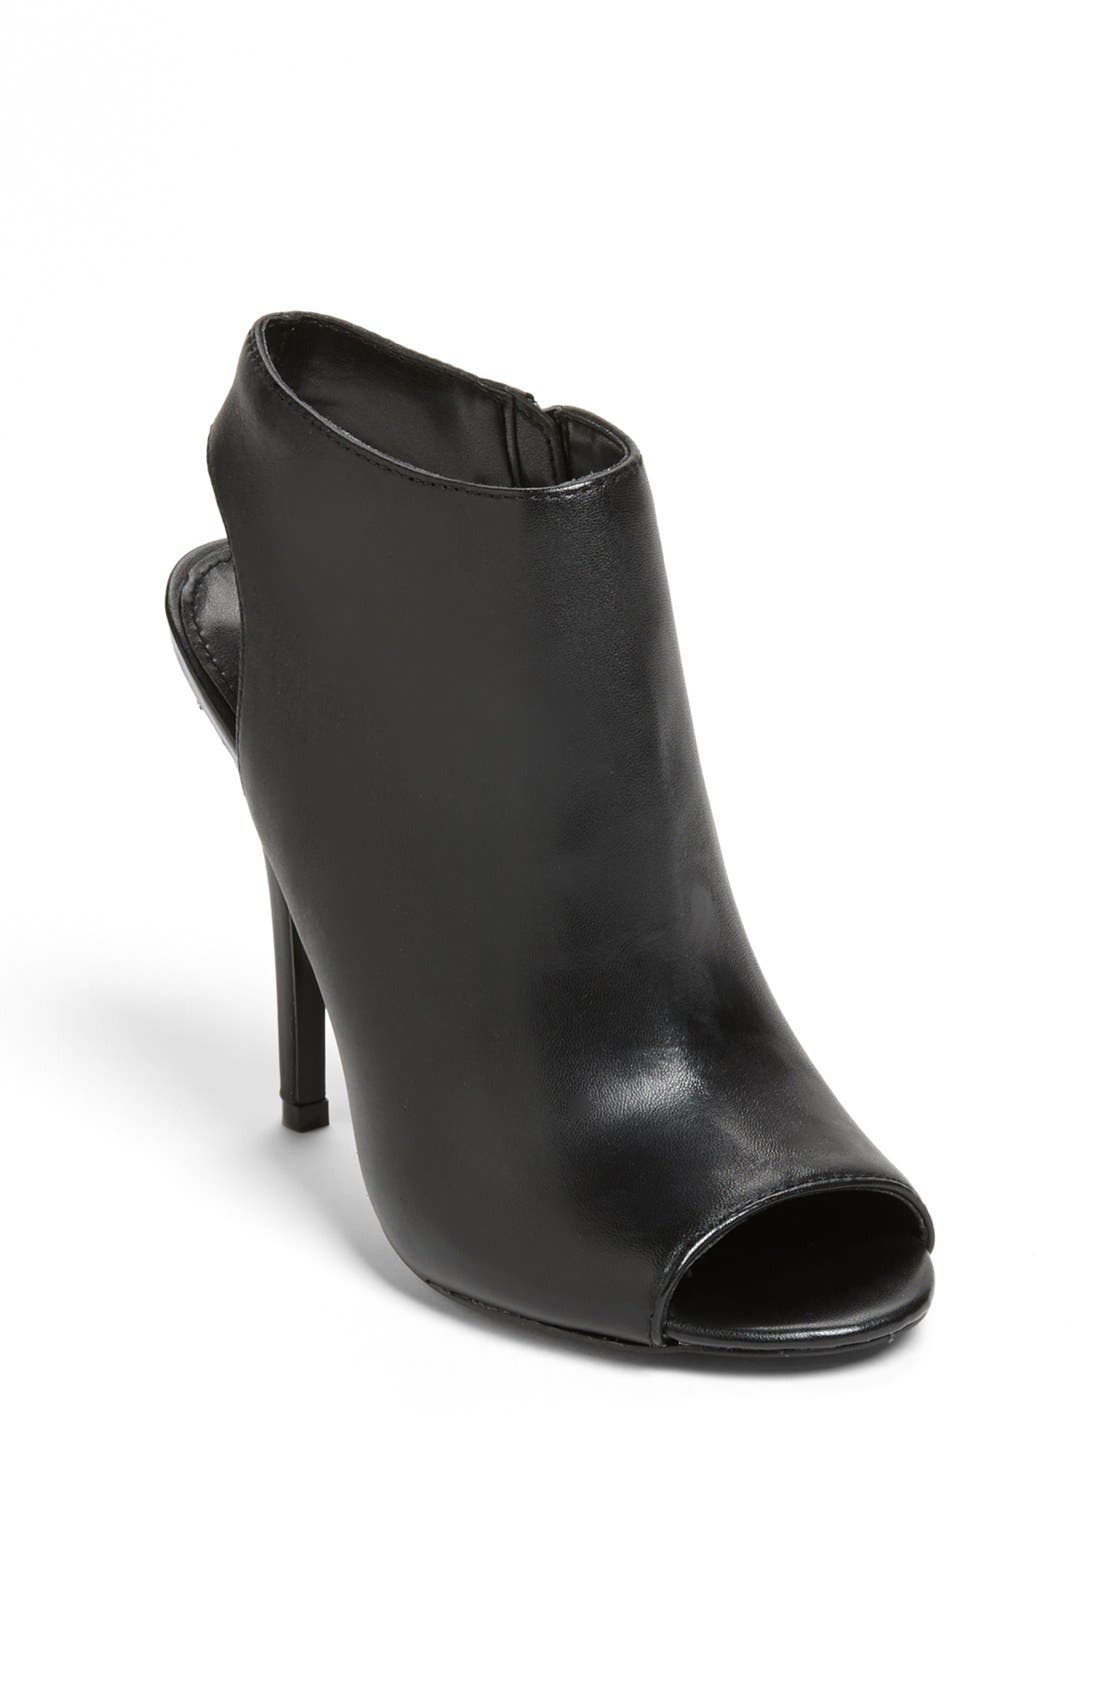 Alternate Image 1 Selected - Steve Madden 'RockNRol' Bootie